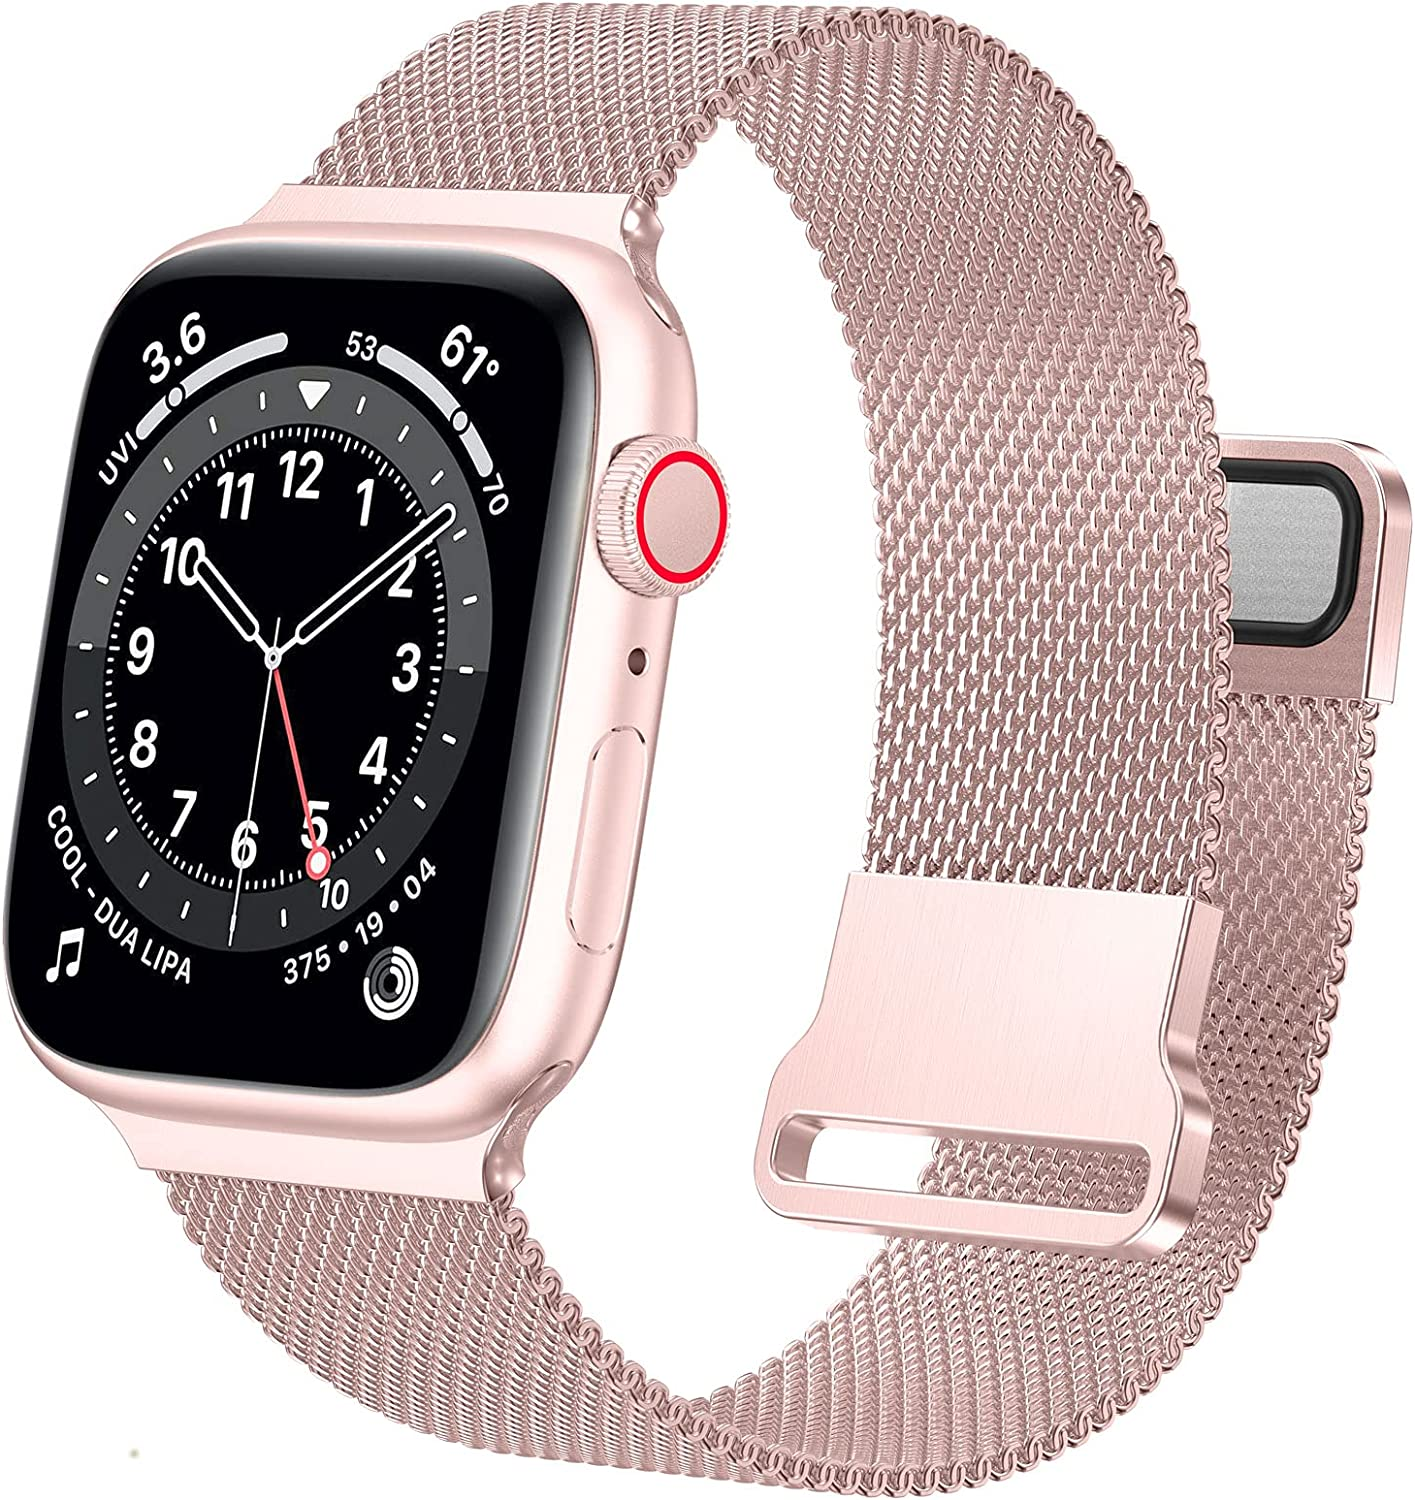 Ycysh Metal Band Compatible with Apple Watch Bands 38mm 40mm for Women Men, Stainless Steel Mesh Loop Adjustable Magnetic Strap Replacement for iWatch Series 6 5 4 3 2 1 SE (38/40mm-Rose Gold Pink)